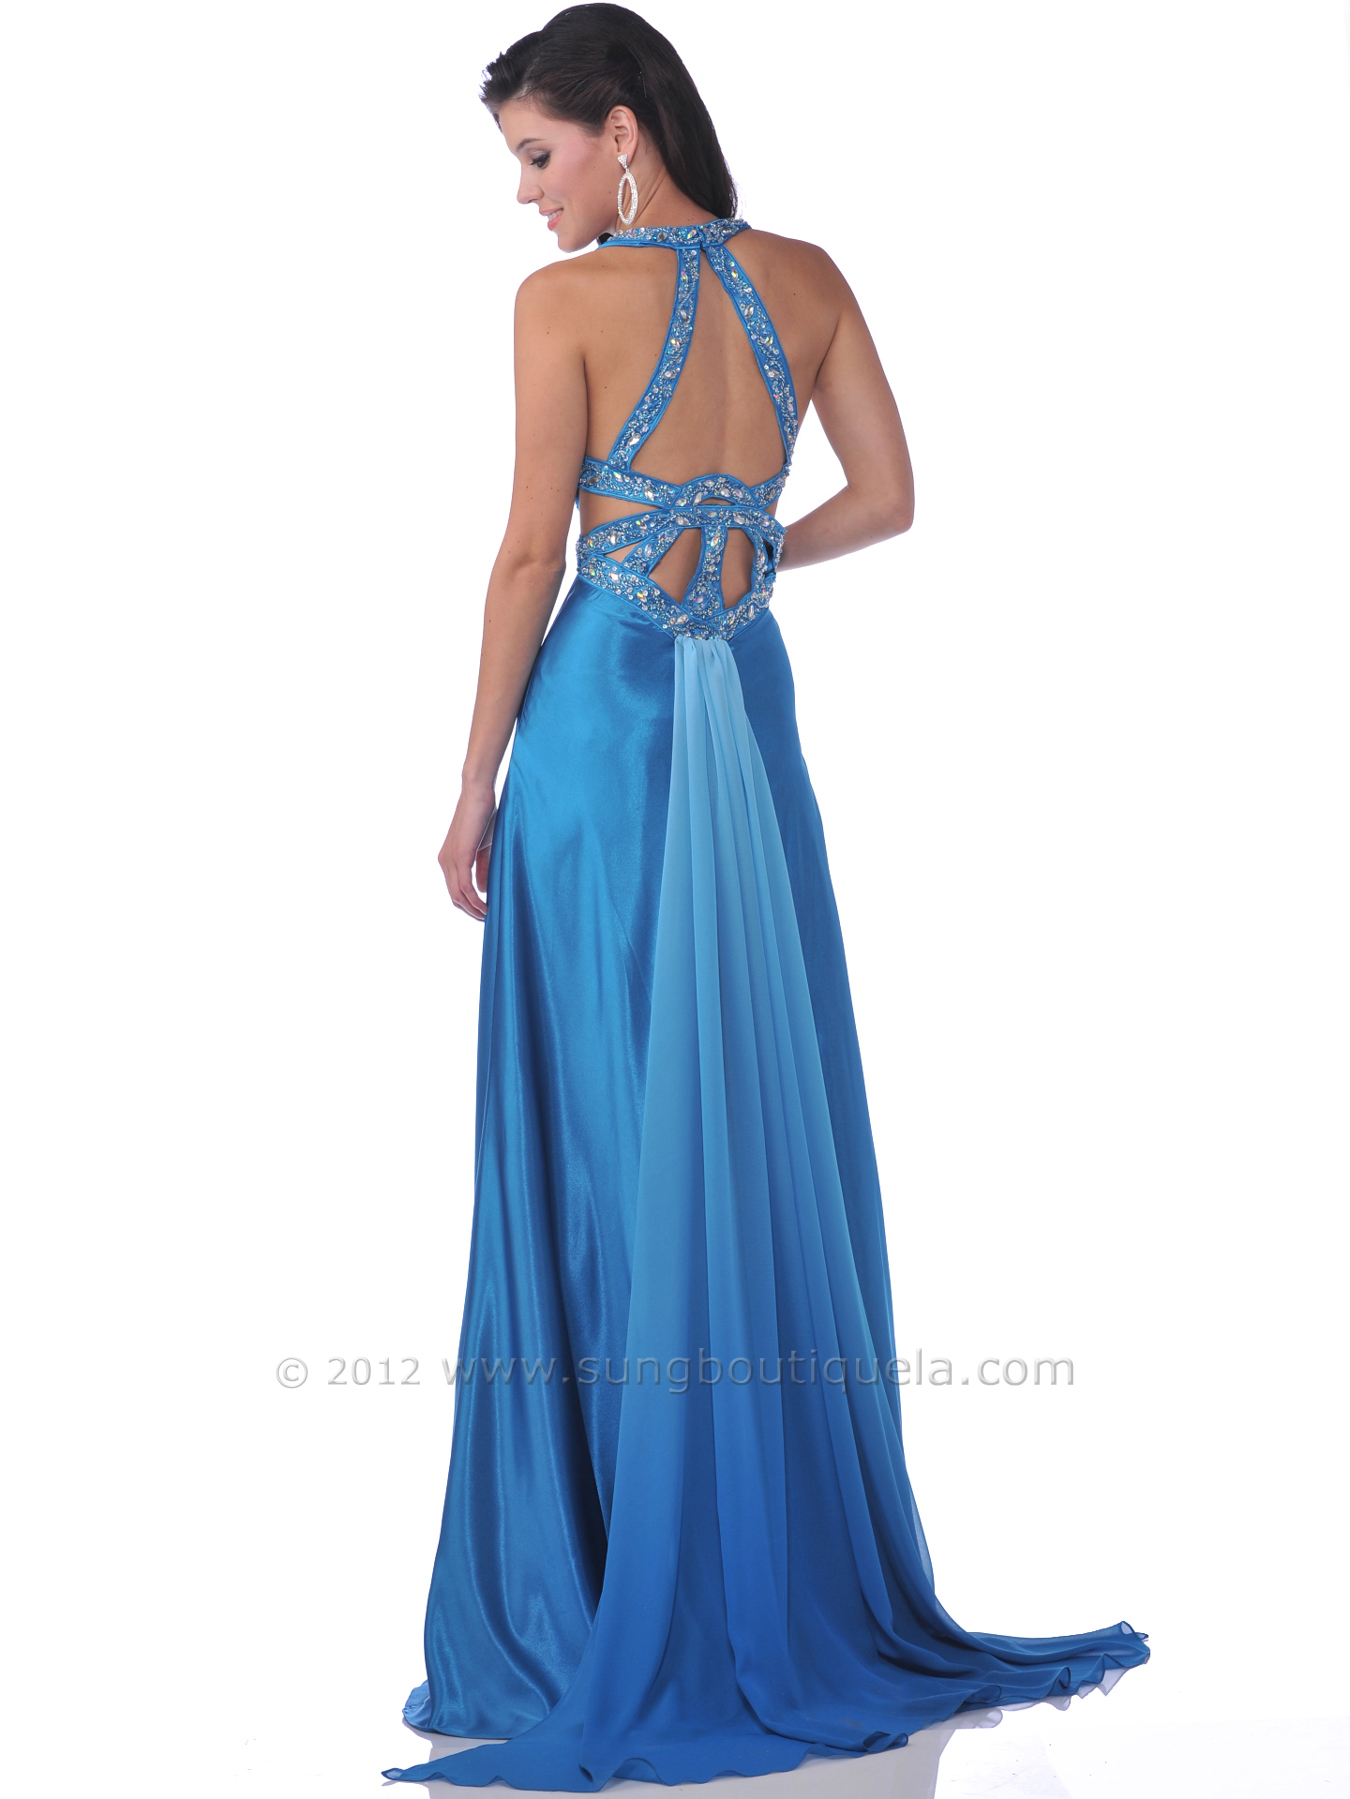 Teal halter prom dress - Best Dressed